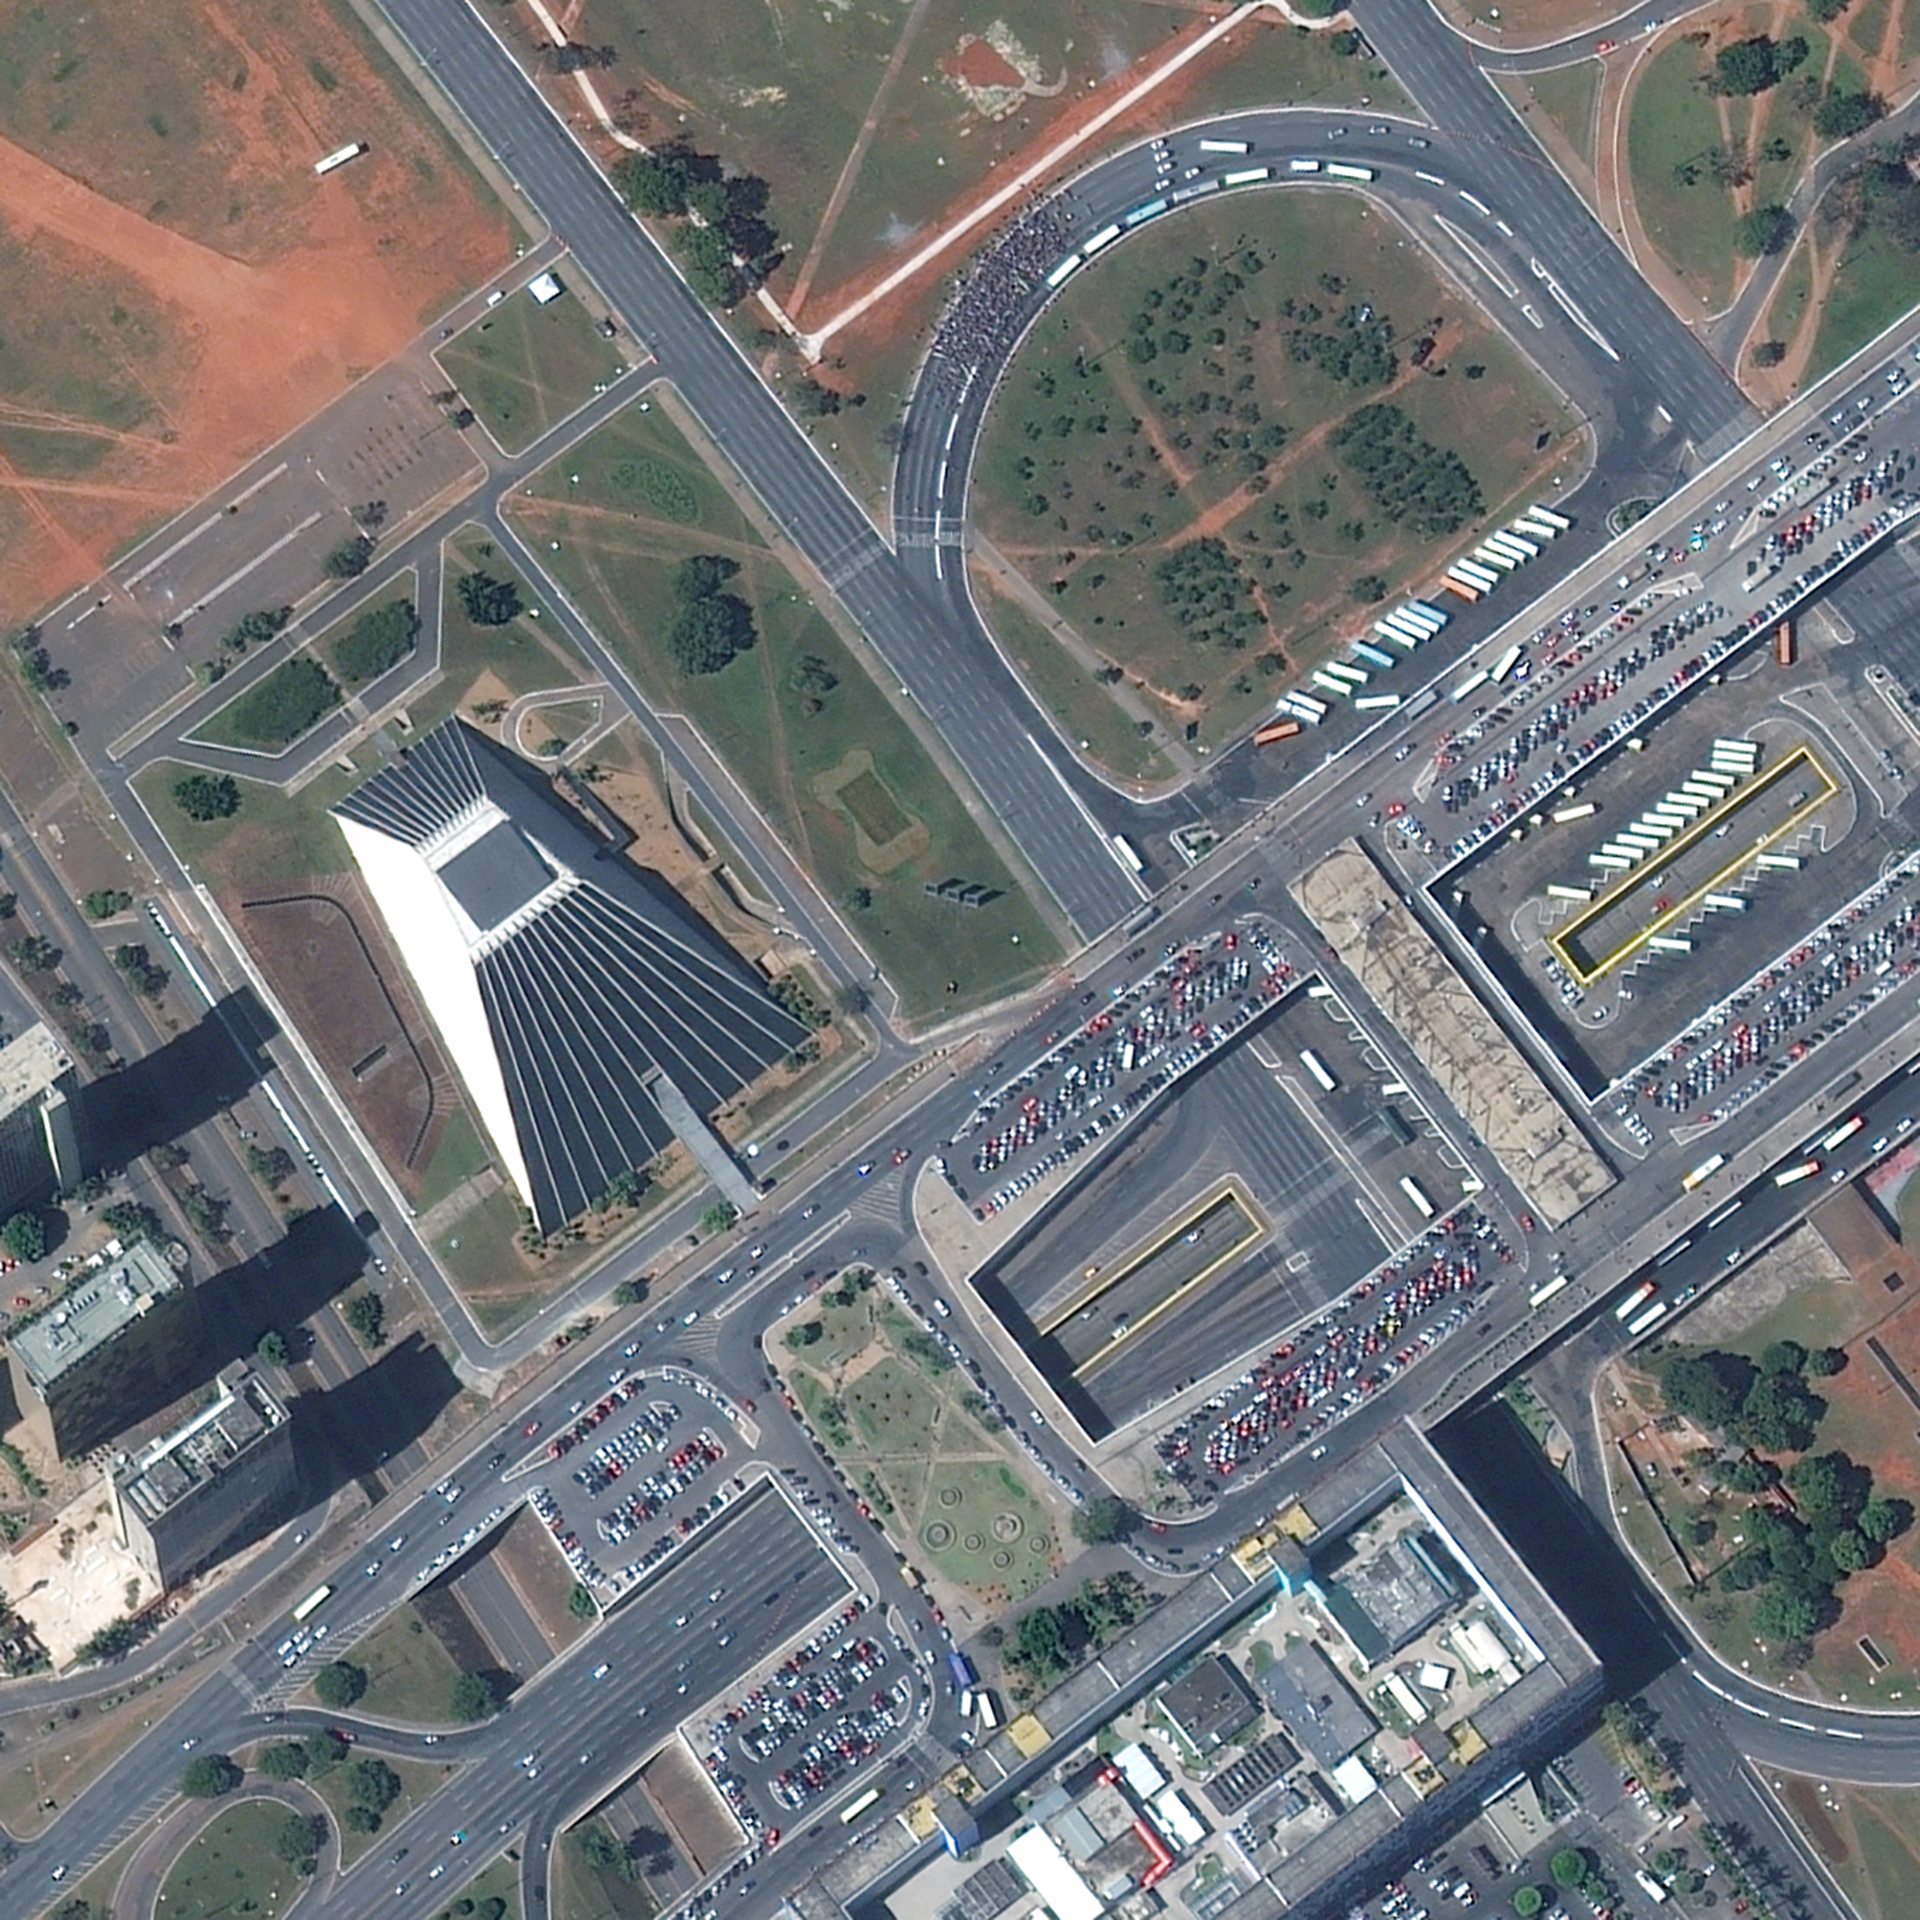 FIGURE 5. This image taken June 15, 2013, by WorldView-2 captures a crowd protesting the Brazilian government's decision to raise bus fares. Courtesy of DigitalGlobe.